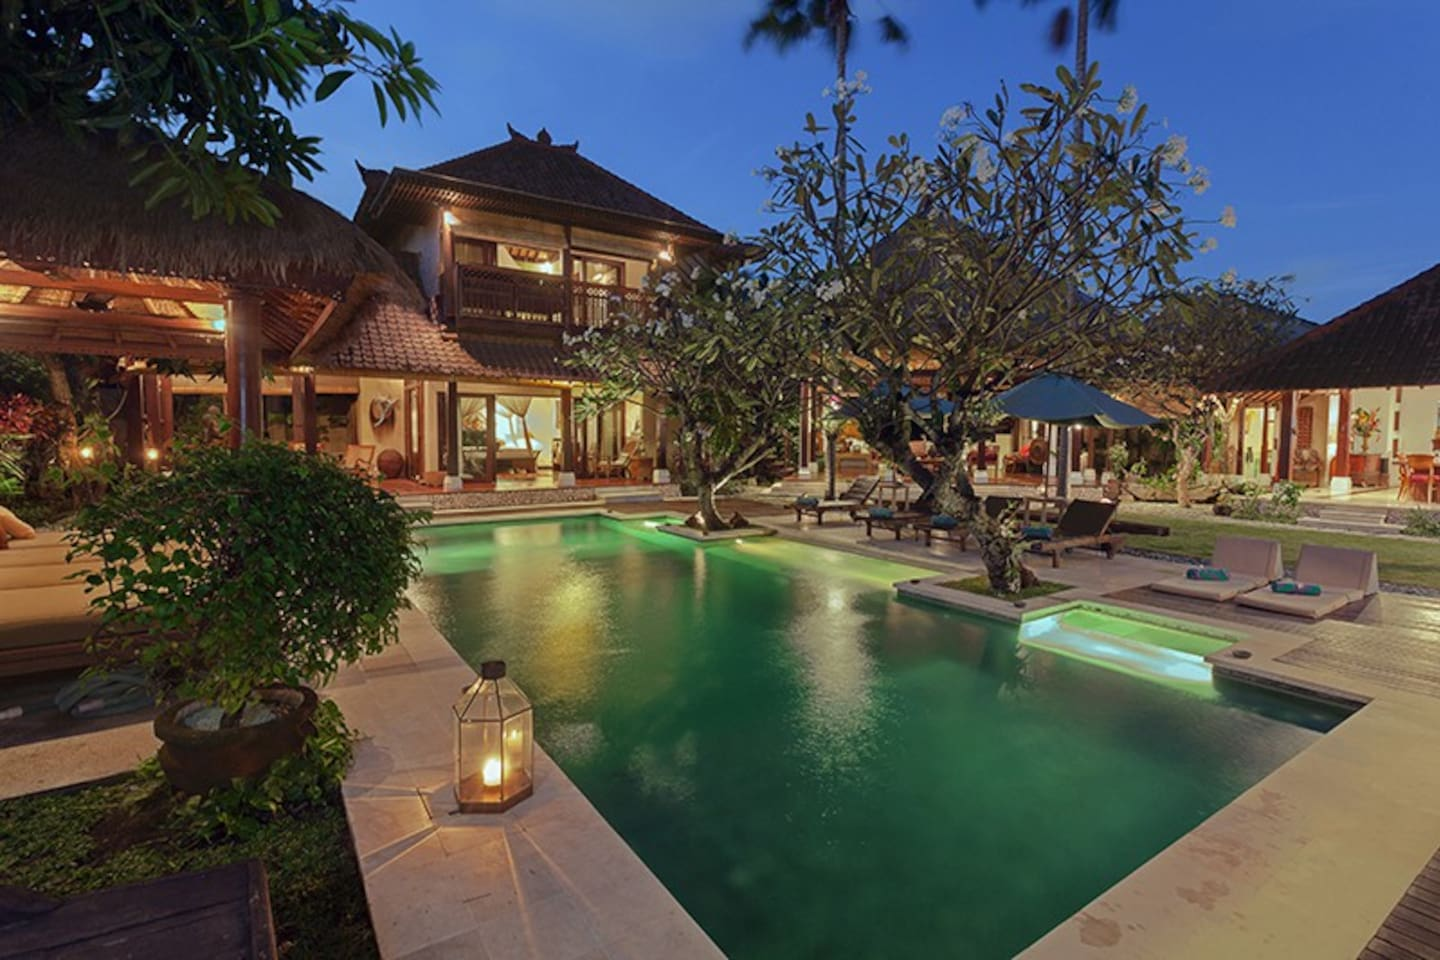 Overlooking the garden and the pool area.